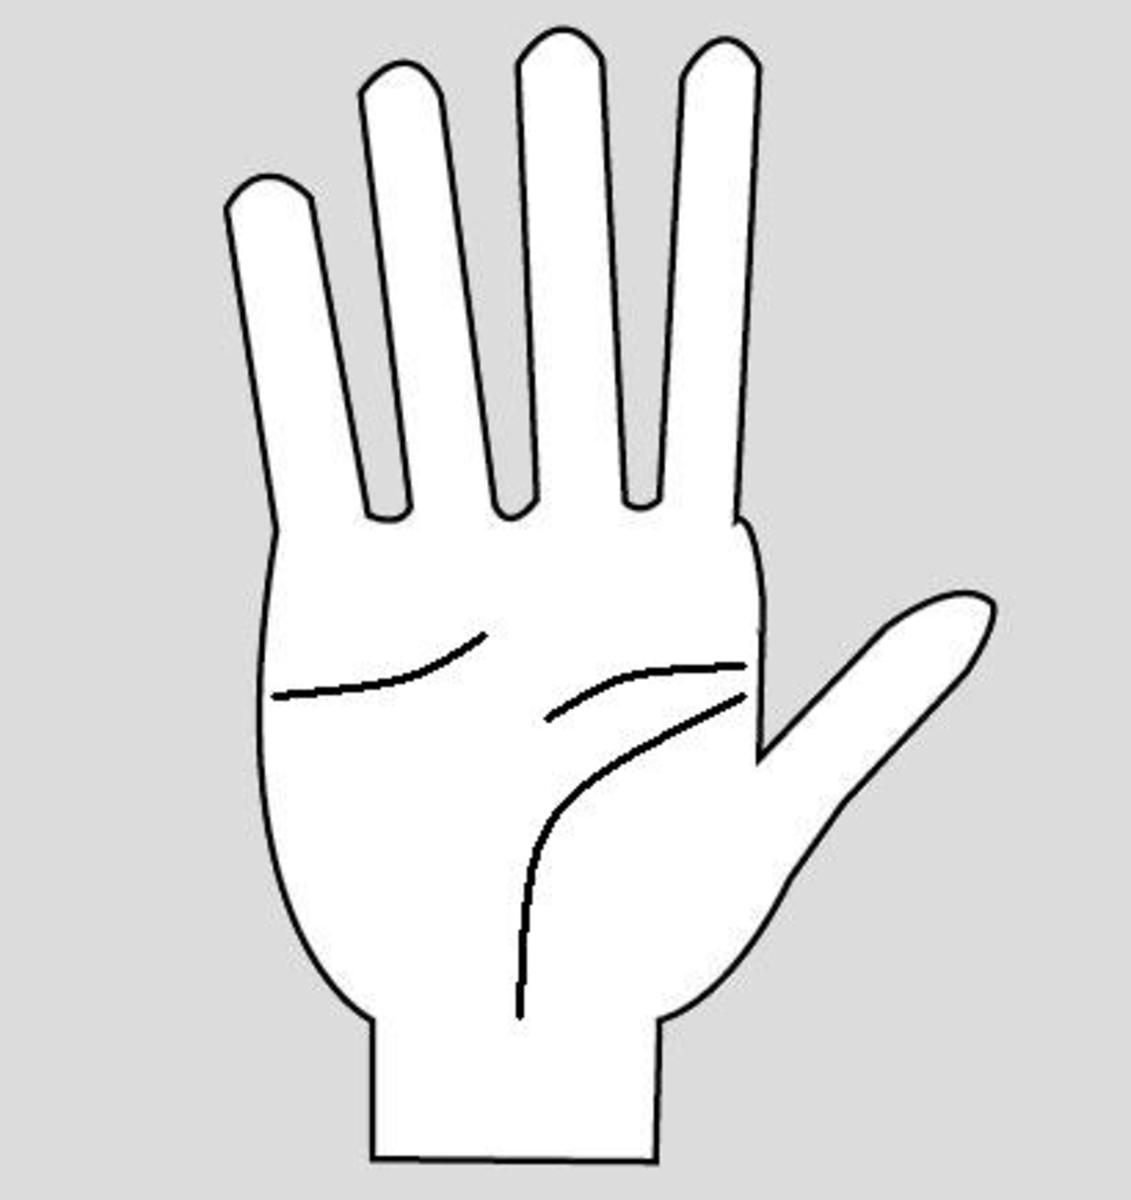 Short head and heart lines on the palm